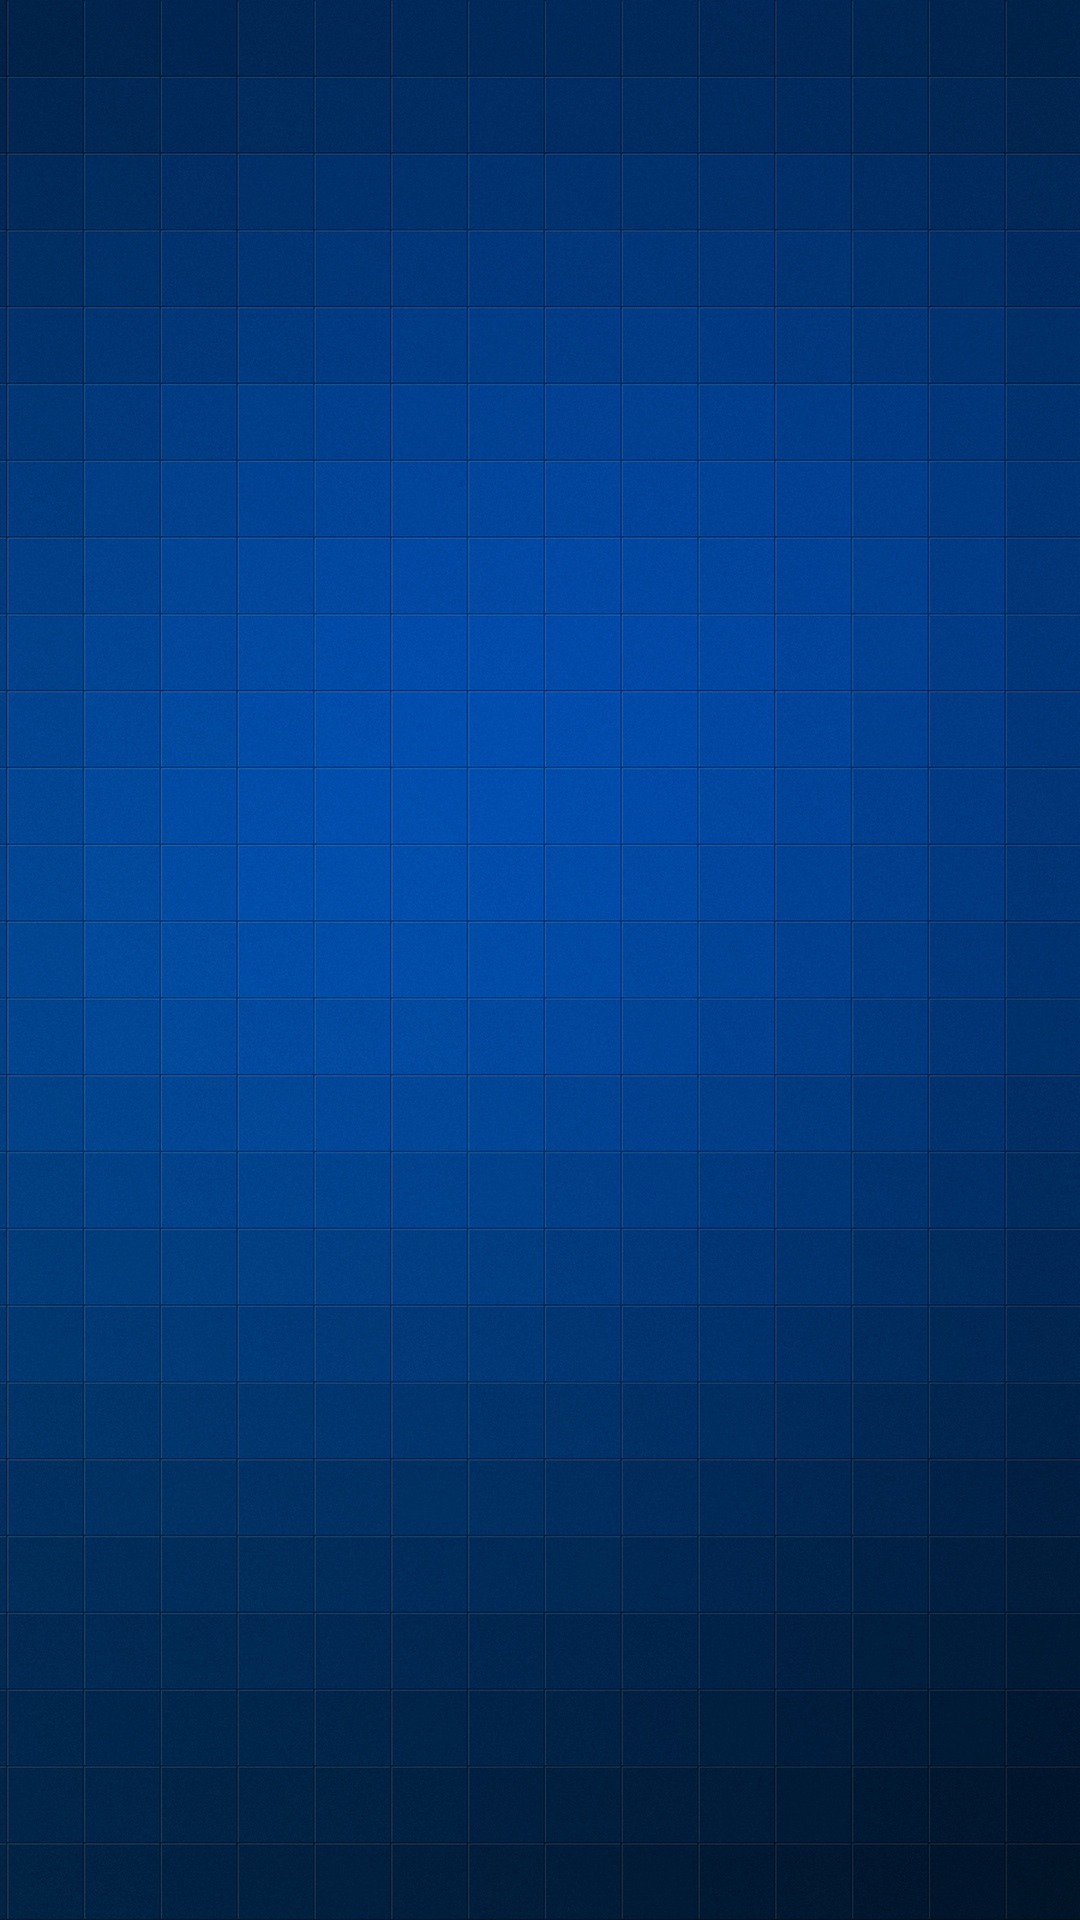 Blue square pattern background - photo#17